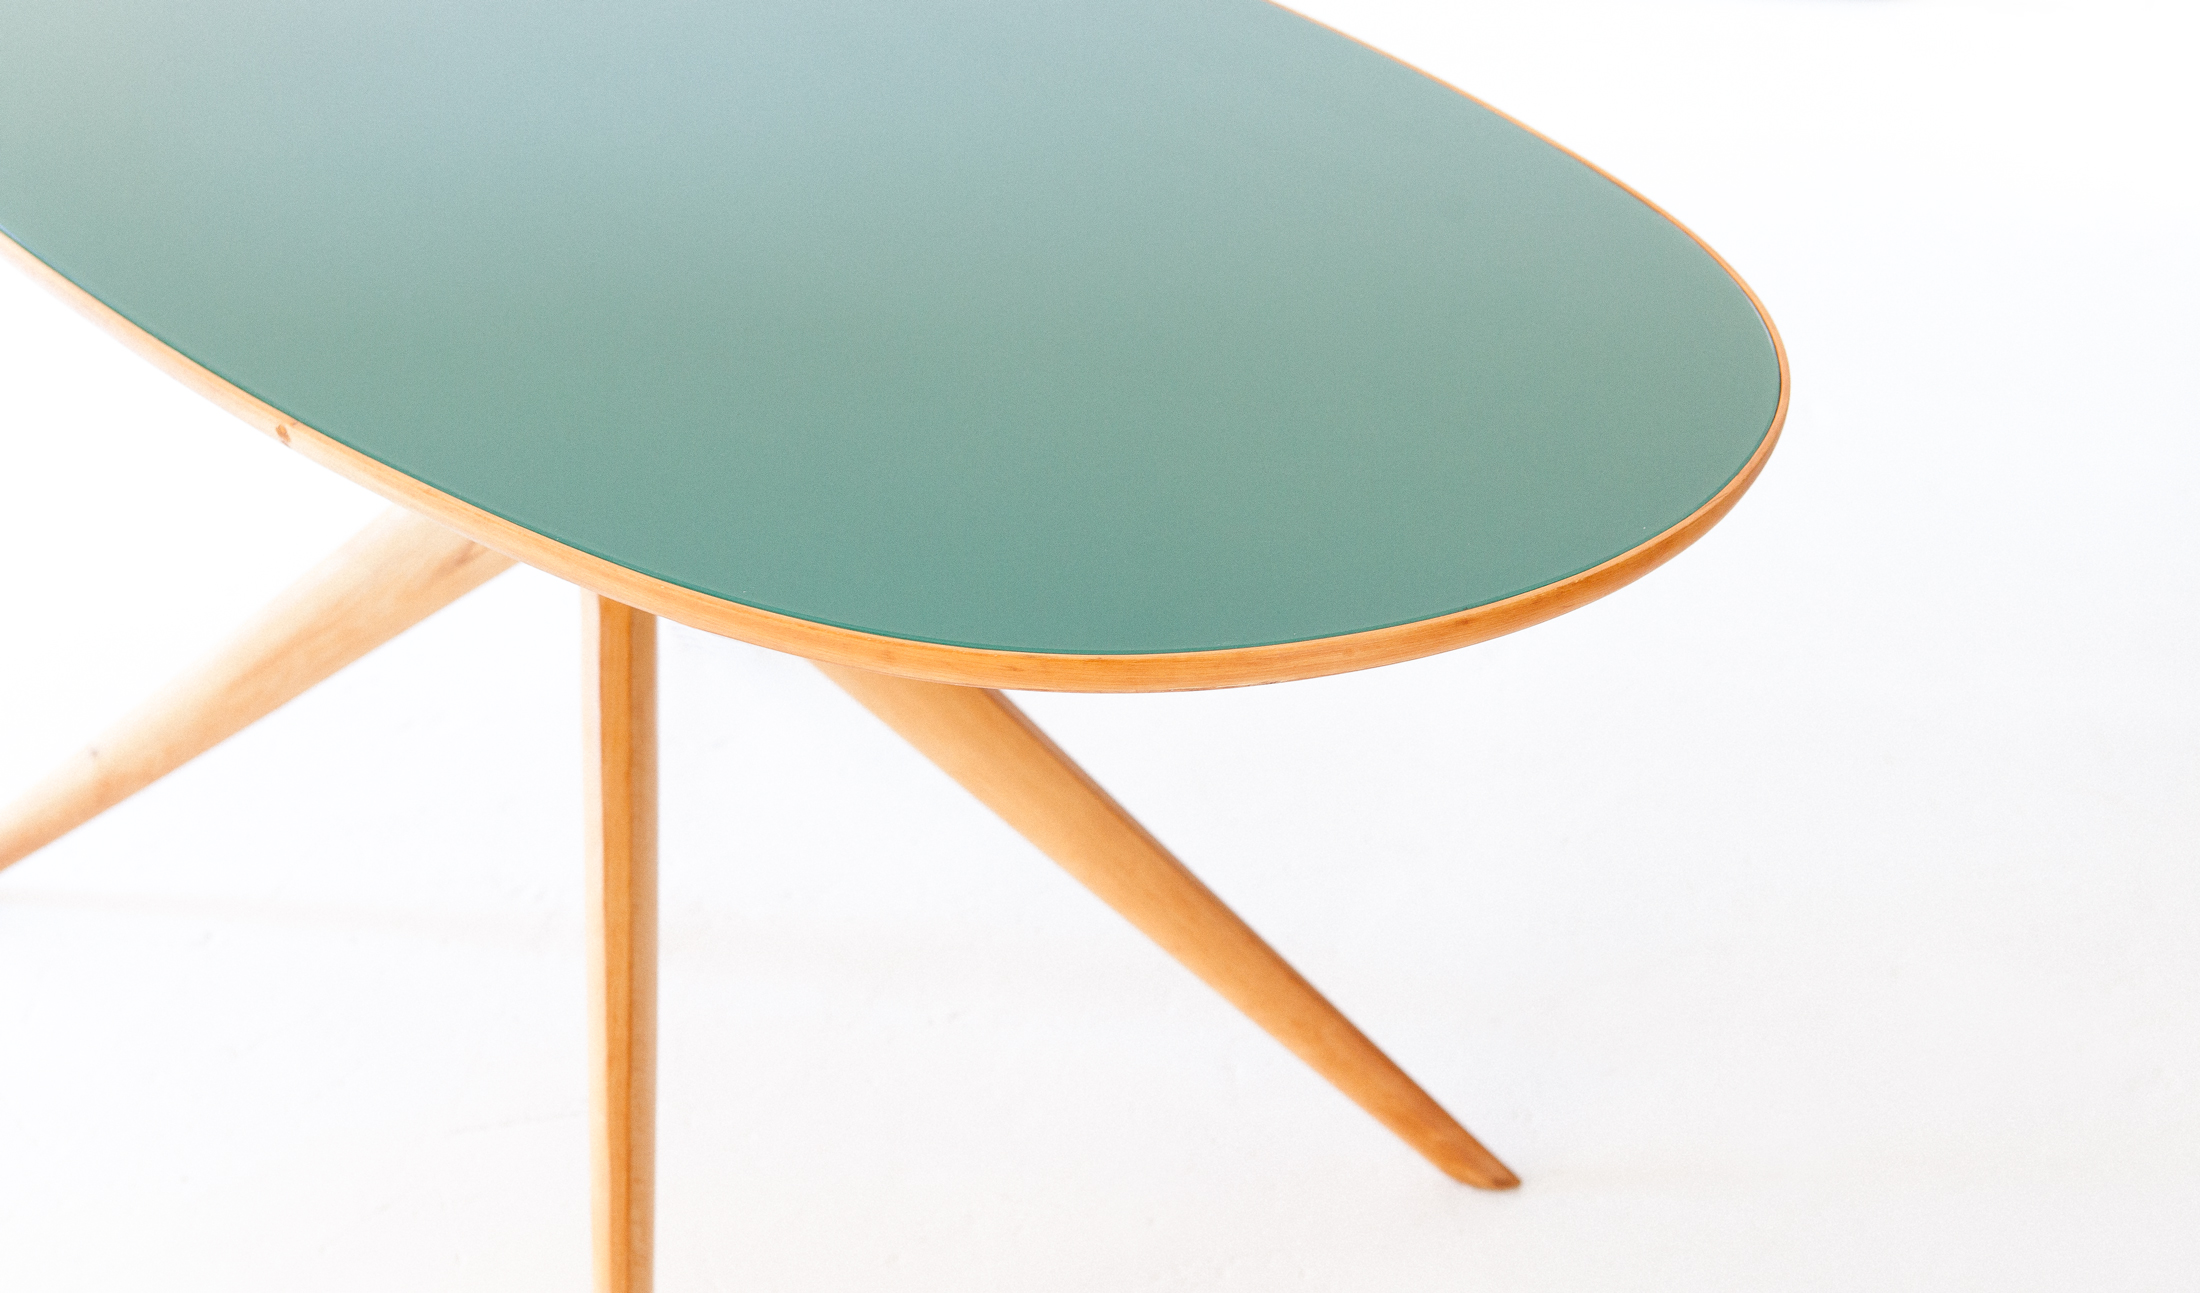 Elliptical-beech-light-green-dining-table-3